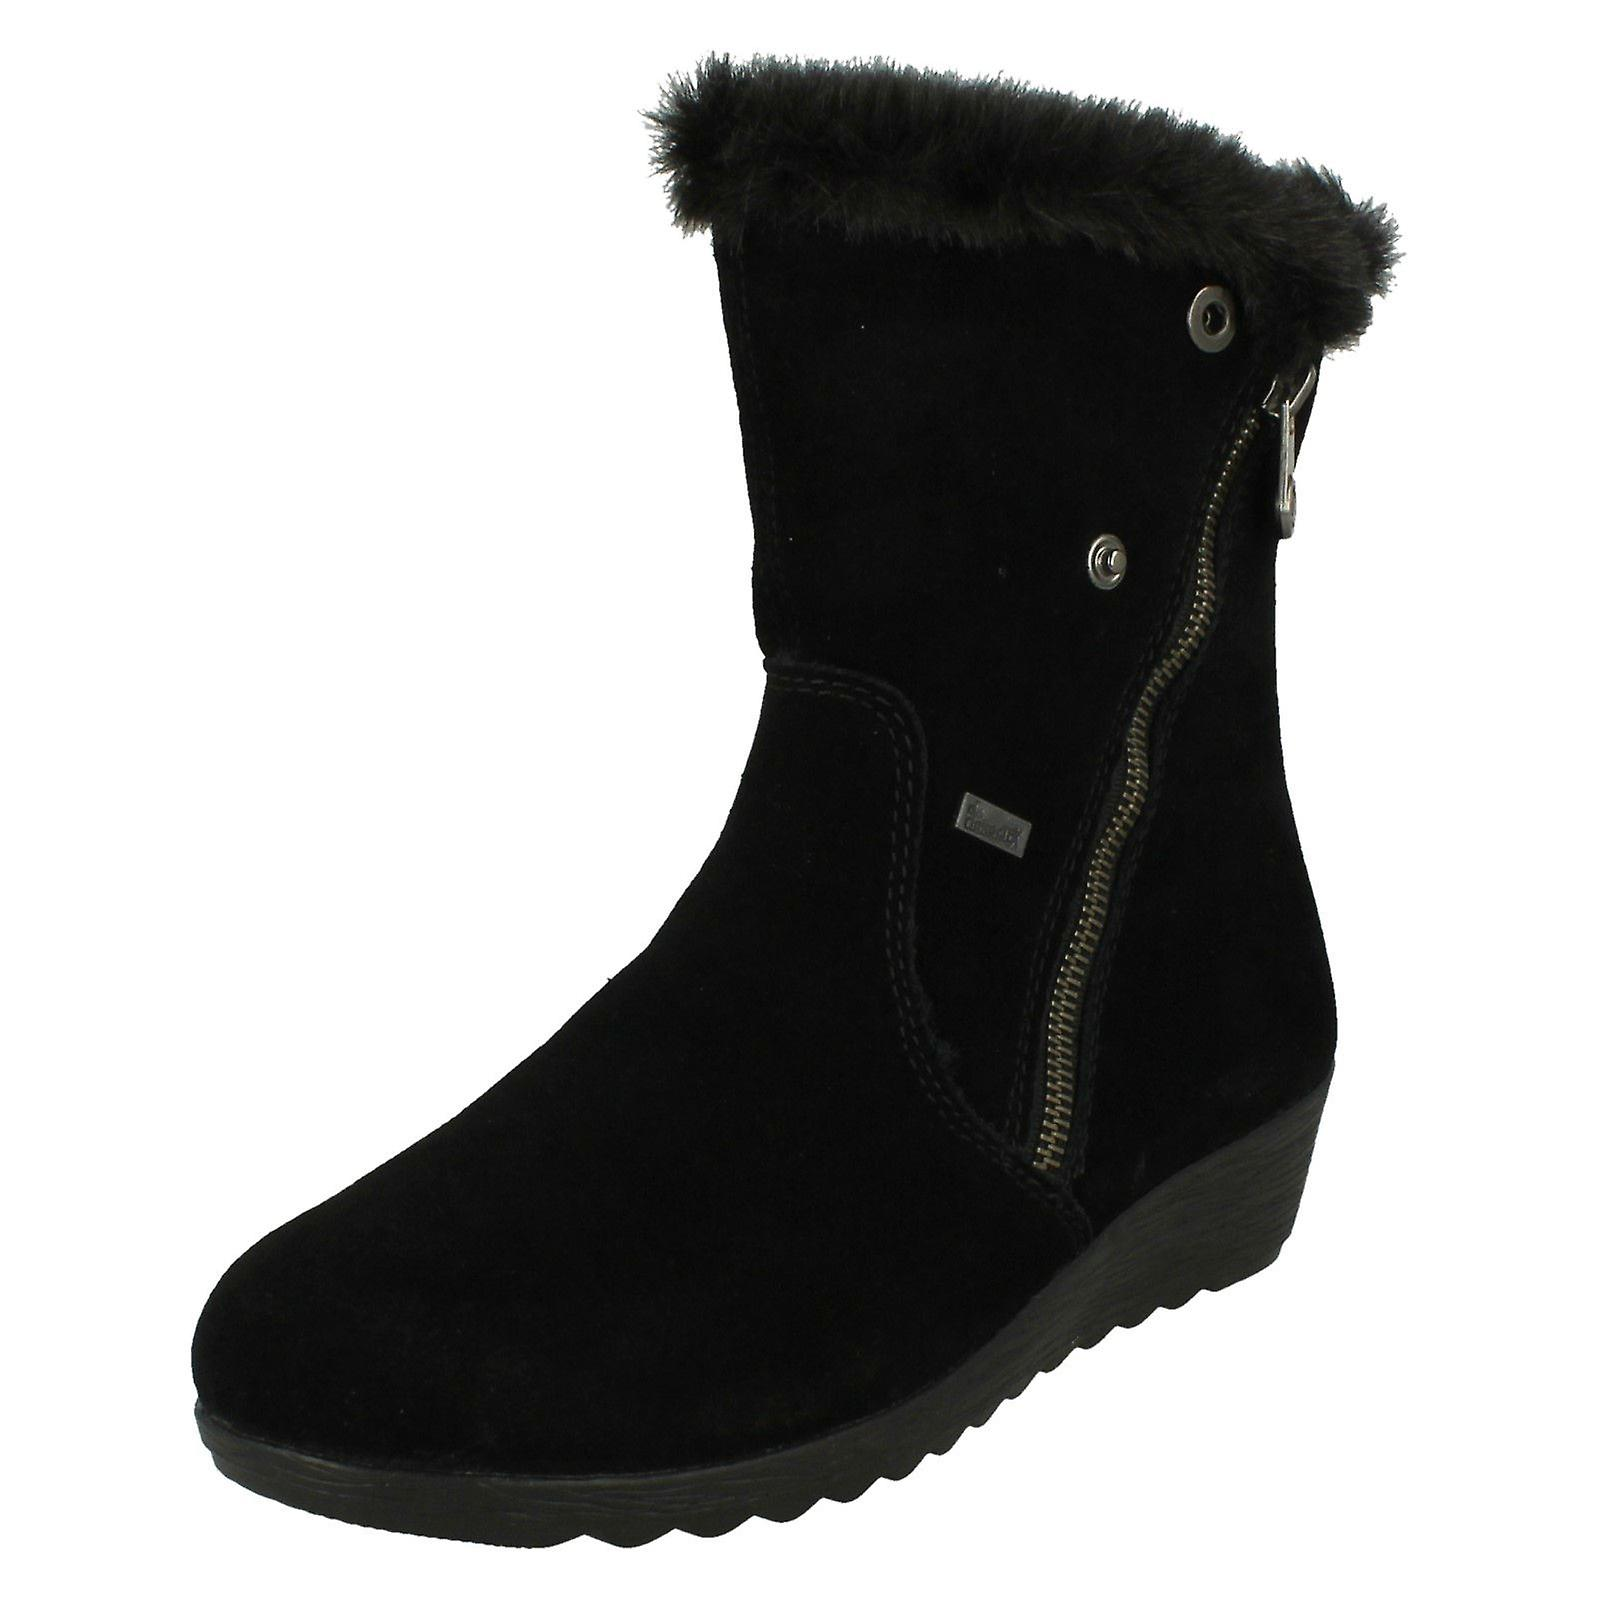 Ladies Rieker Lambswool Lined Ankle Boots Z2470 m9Q6h